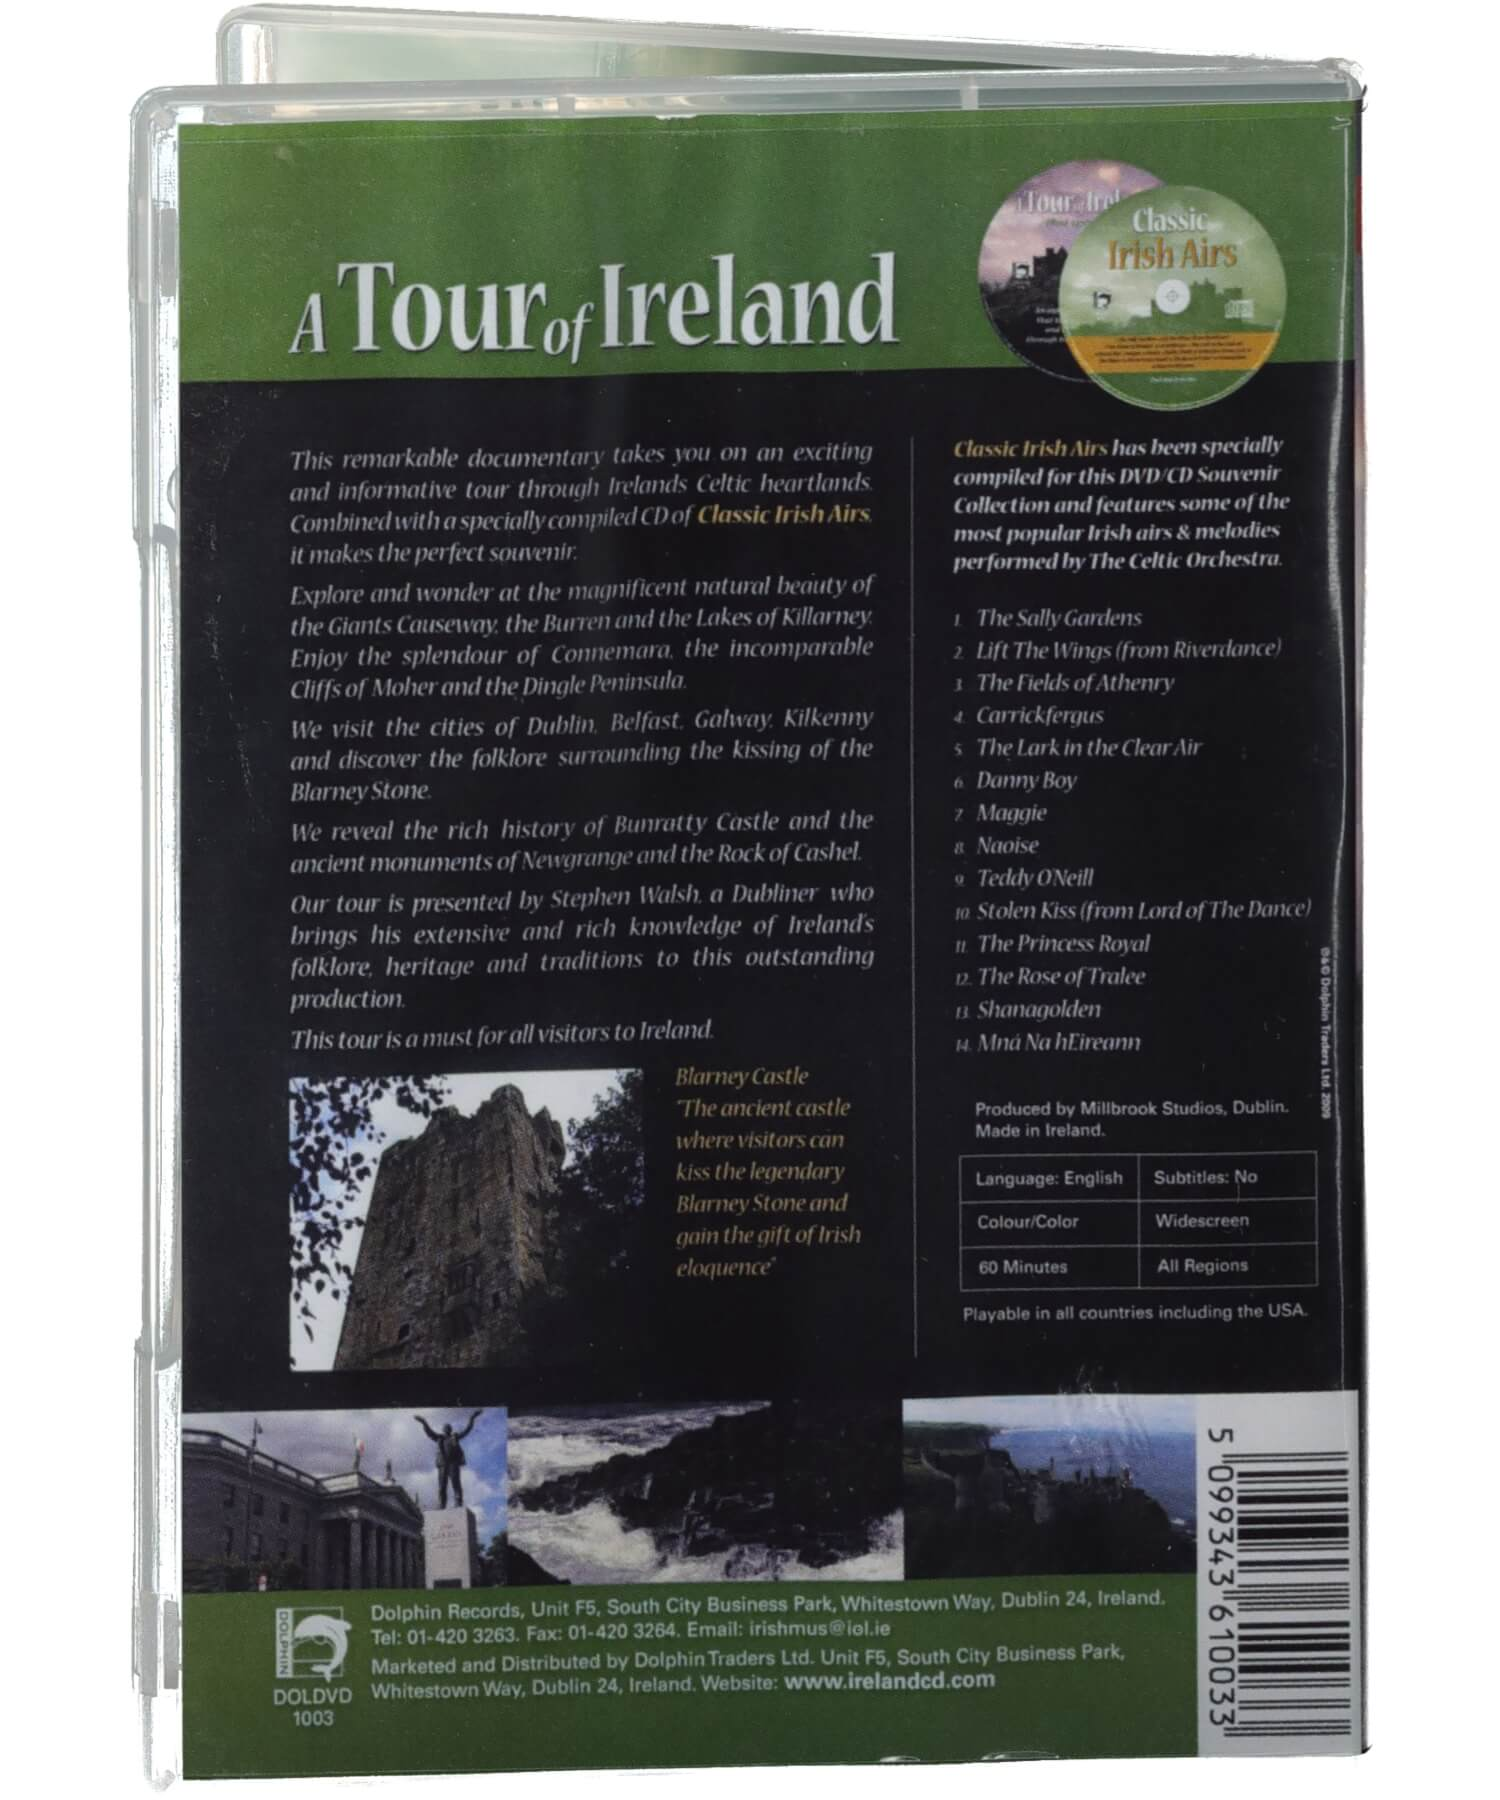 A Tour of Ireland DVD & CD - [Ceol] - Music - Irish Gifts